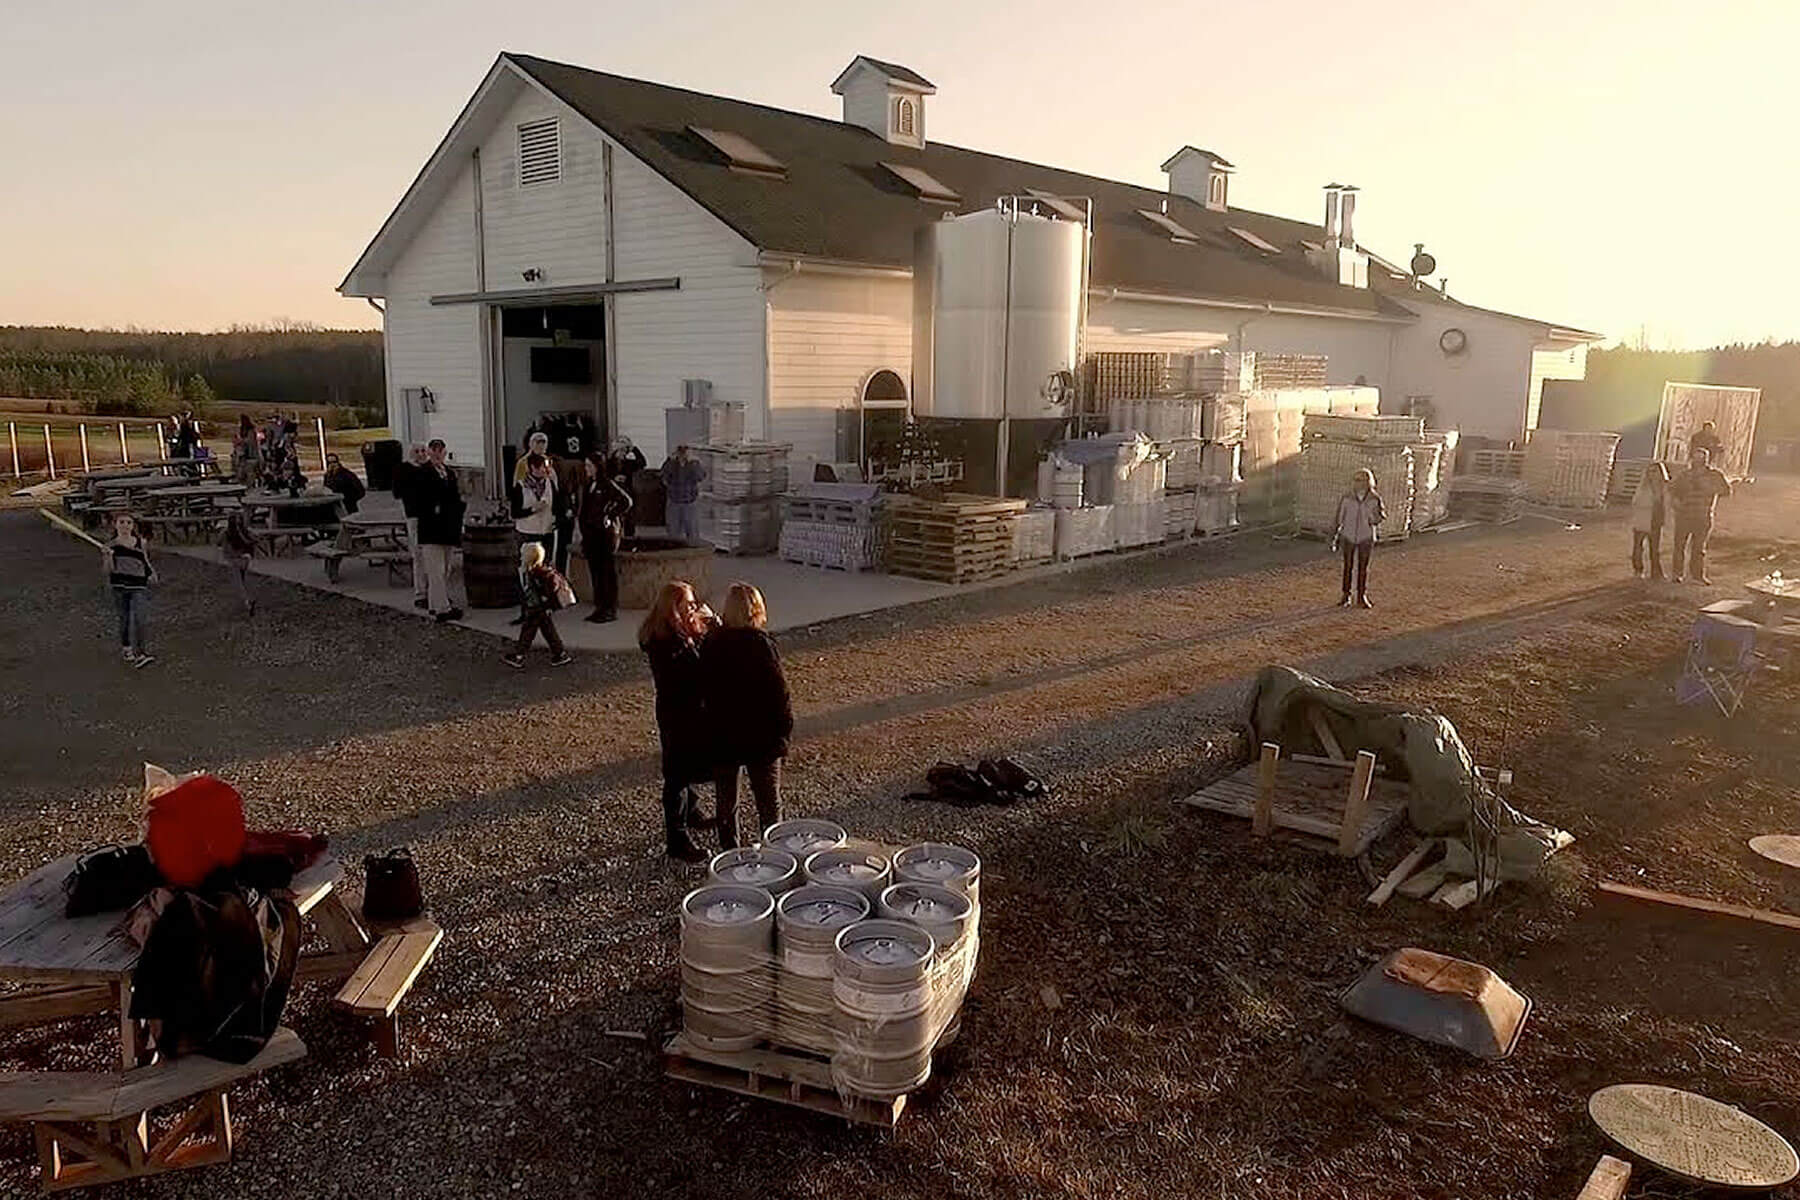 Guests enjoy beers outside Lickinghole Creek Craft Brewery at sunset in Goochland, Virginia